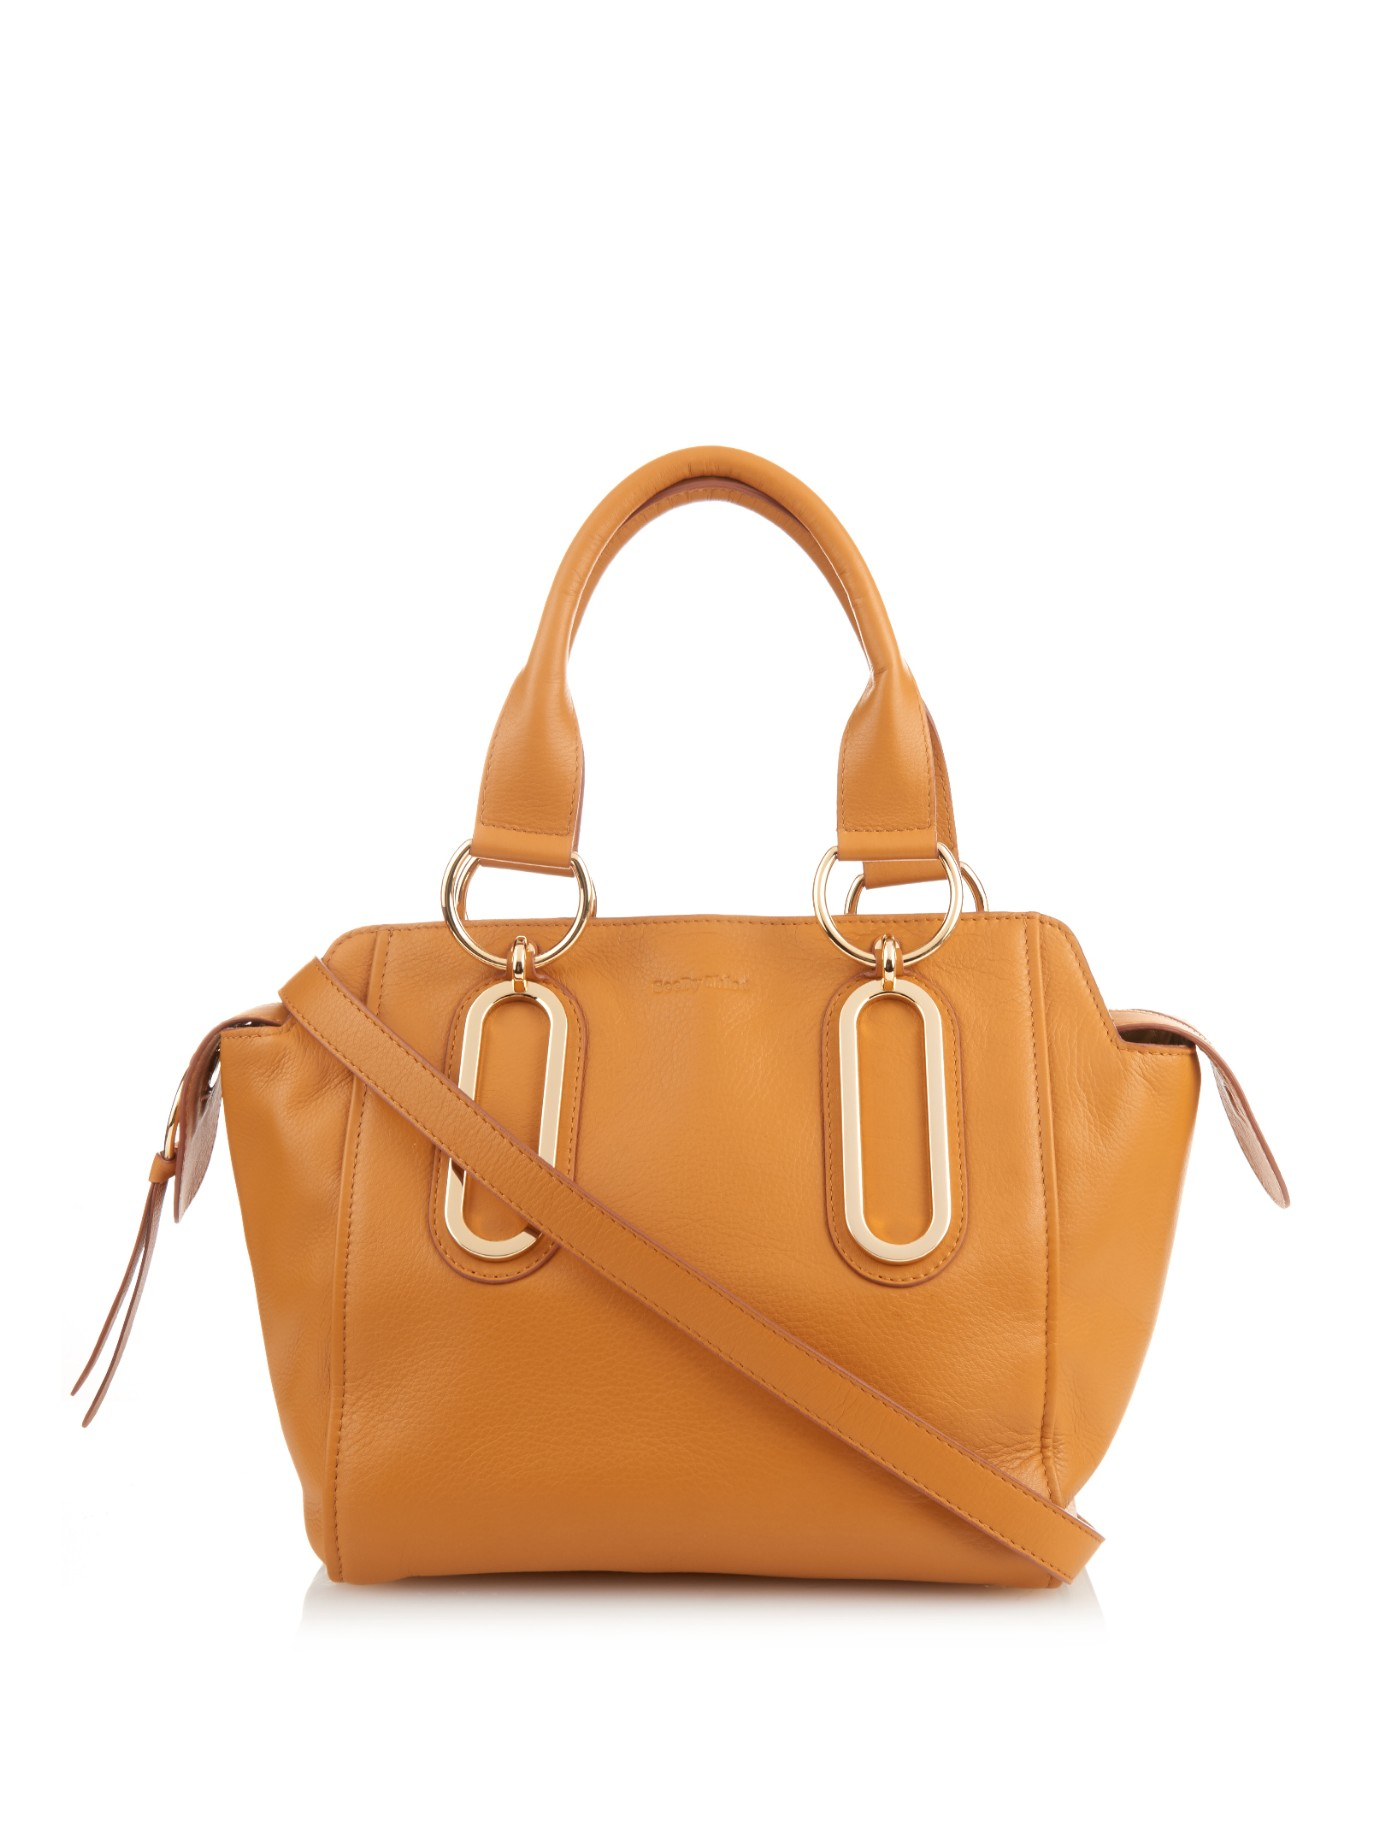 adb653d178 See By Chloé Orange Paige Large Leather Bag